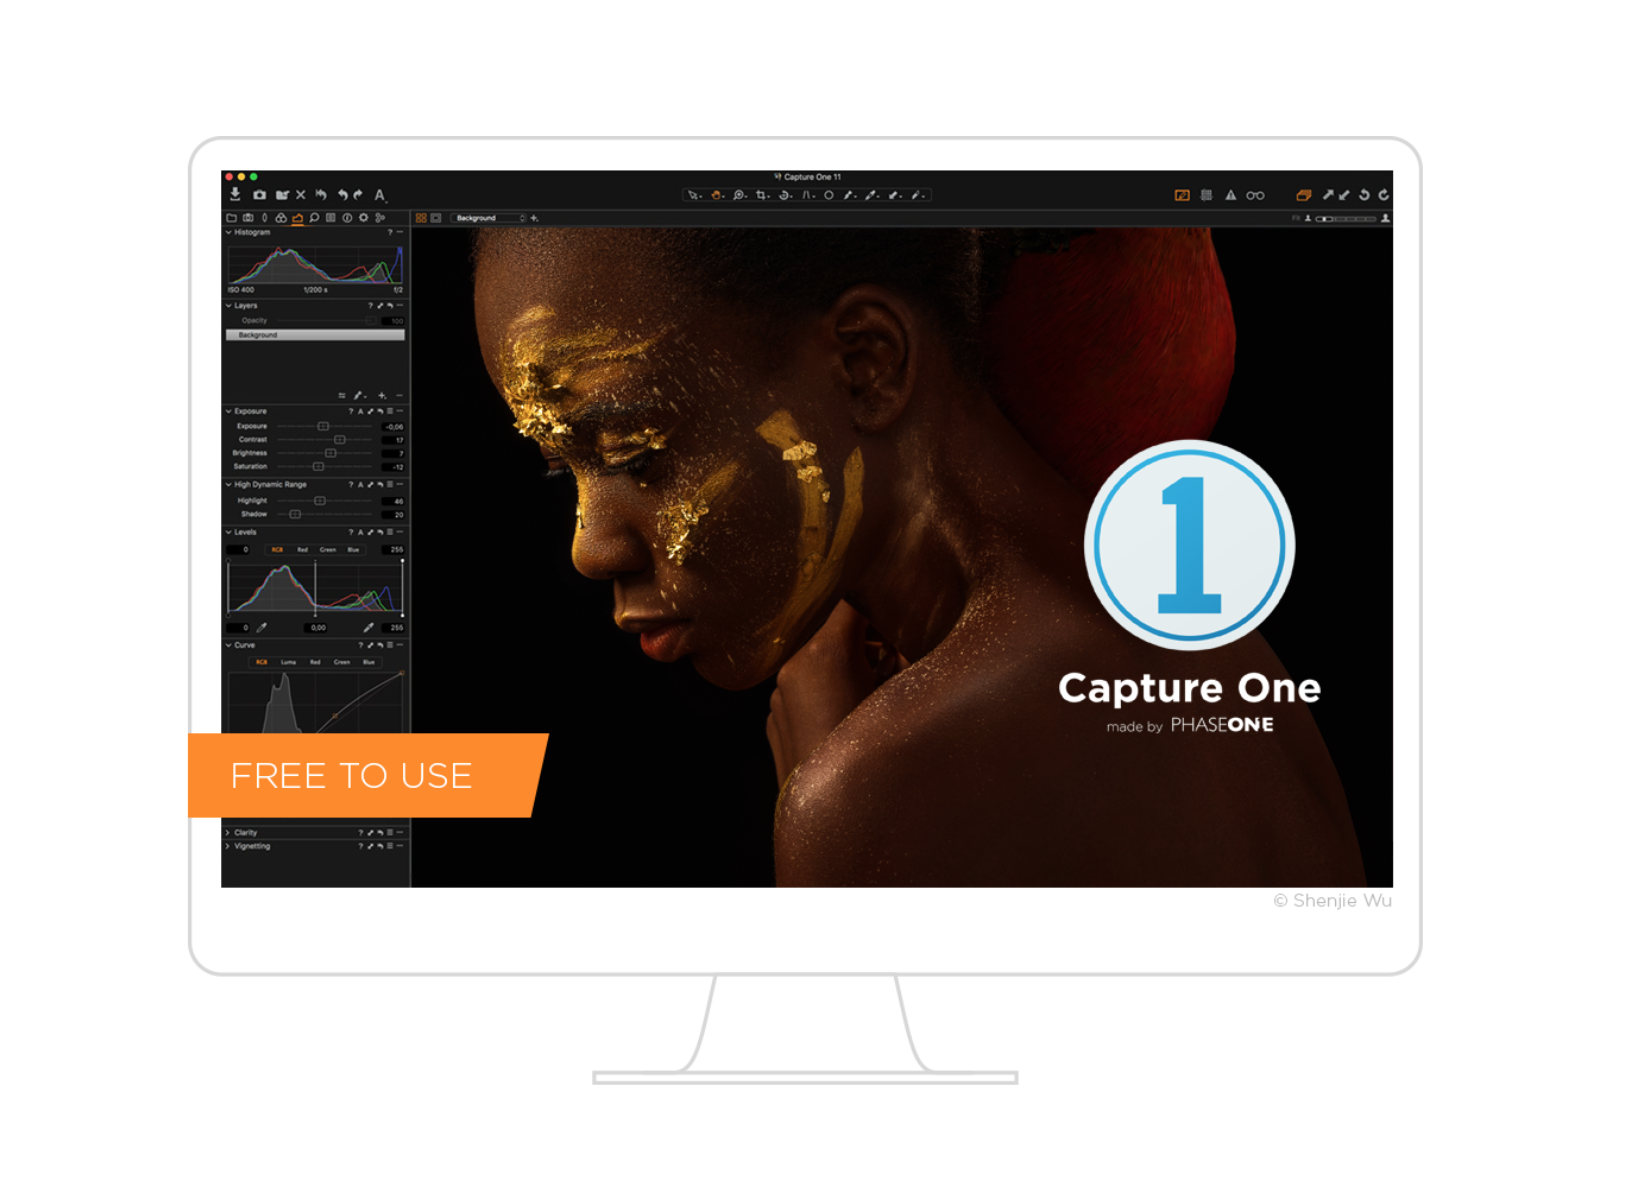 Phase Shifted, Capture One for Fujifilm Released and Free